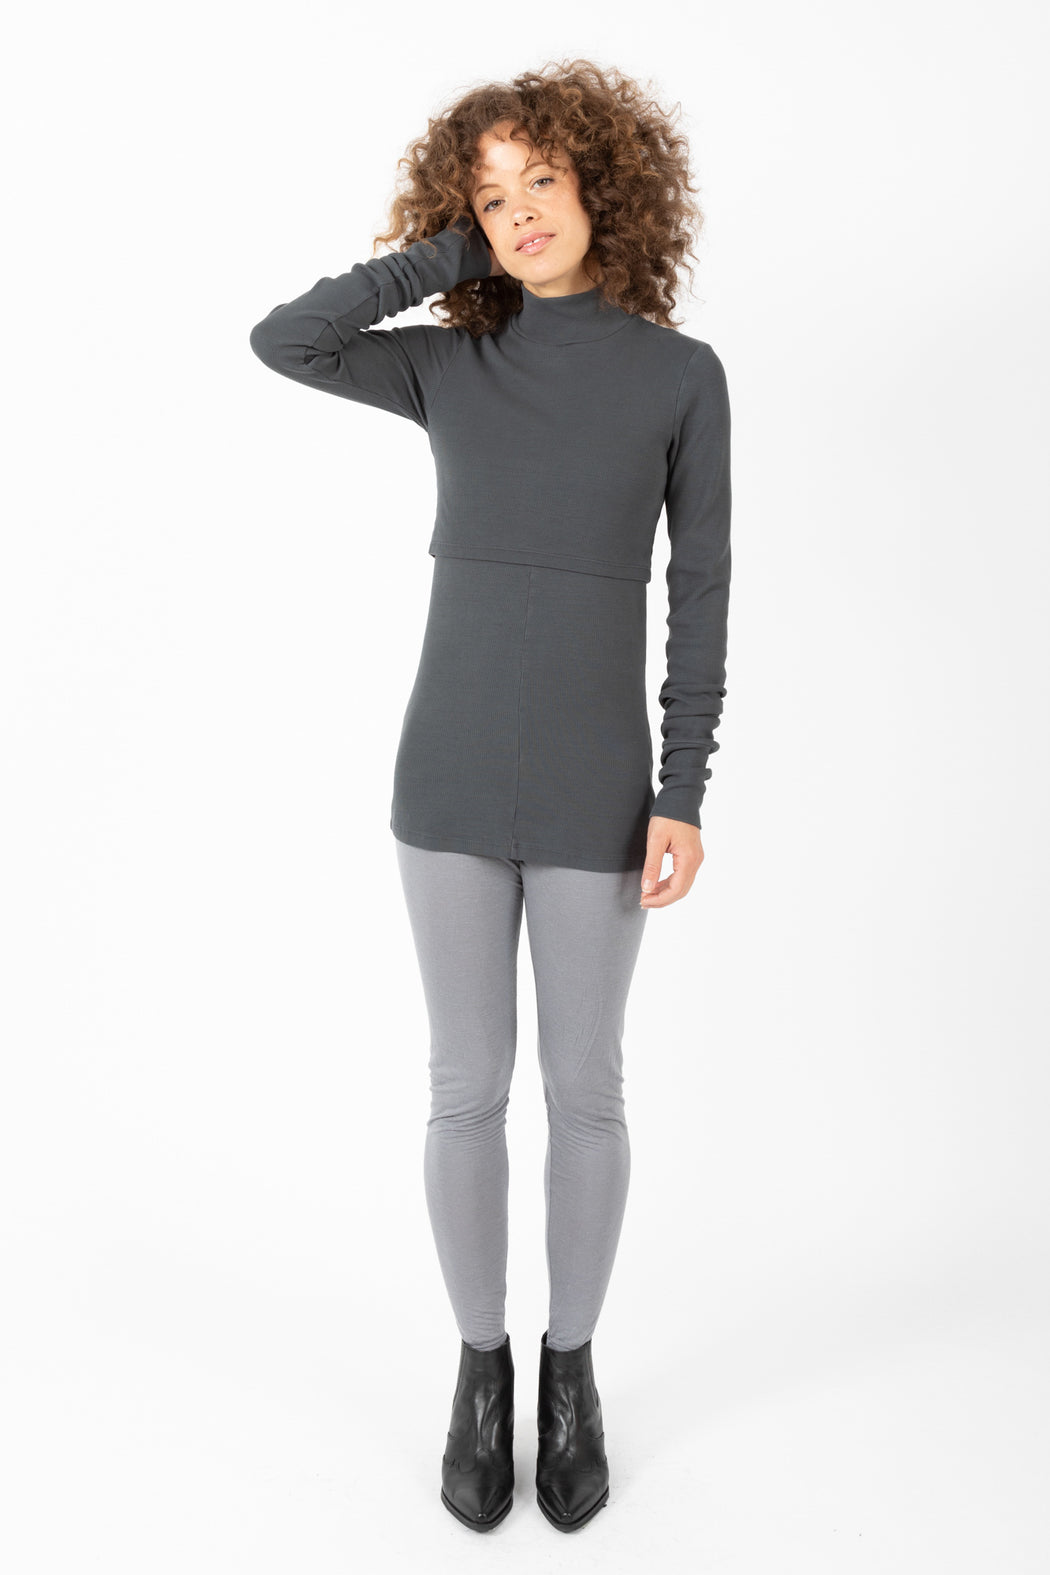 A sweater alternative in organic cotton, the Layered Mock Neck appears as two layers, the crop top overlay emphasizes your waist while the double layers of textile adds core warmth.